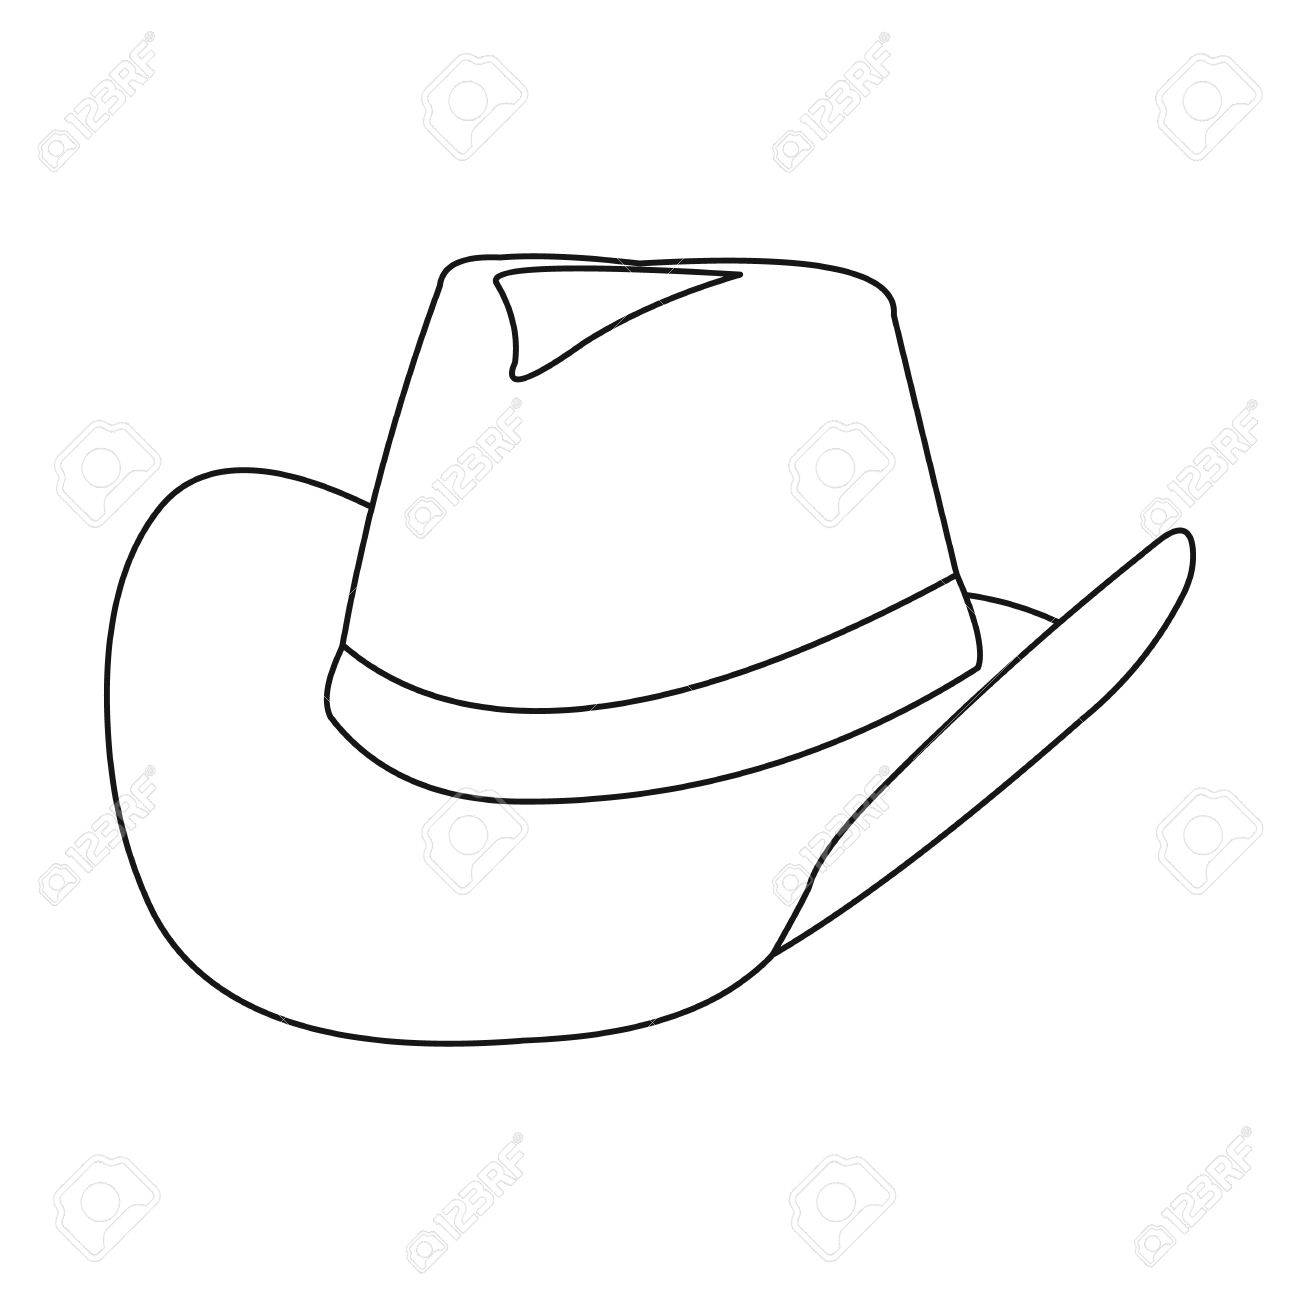 Cowboy hat icon outline. Singe western icon from the wild west outline.  Stock Vector 53a0ec75d5f0